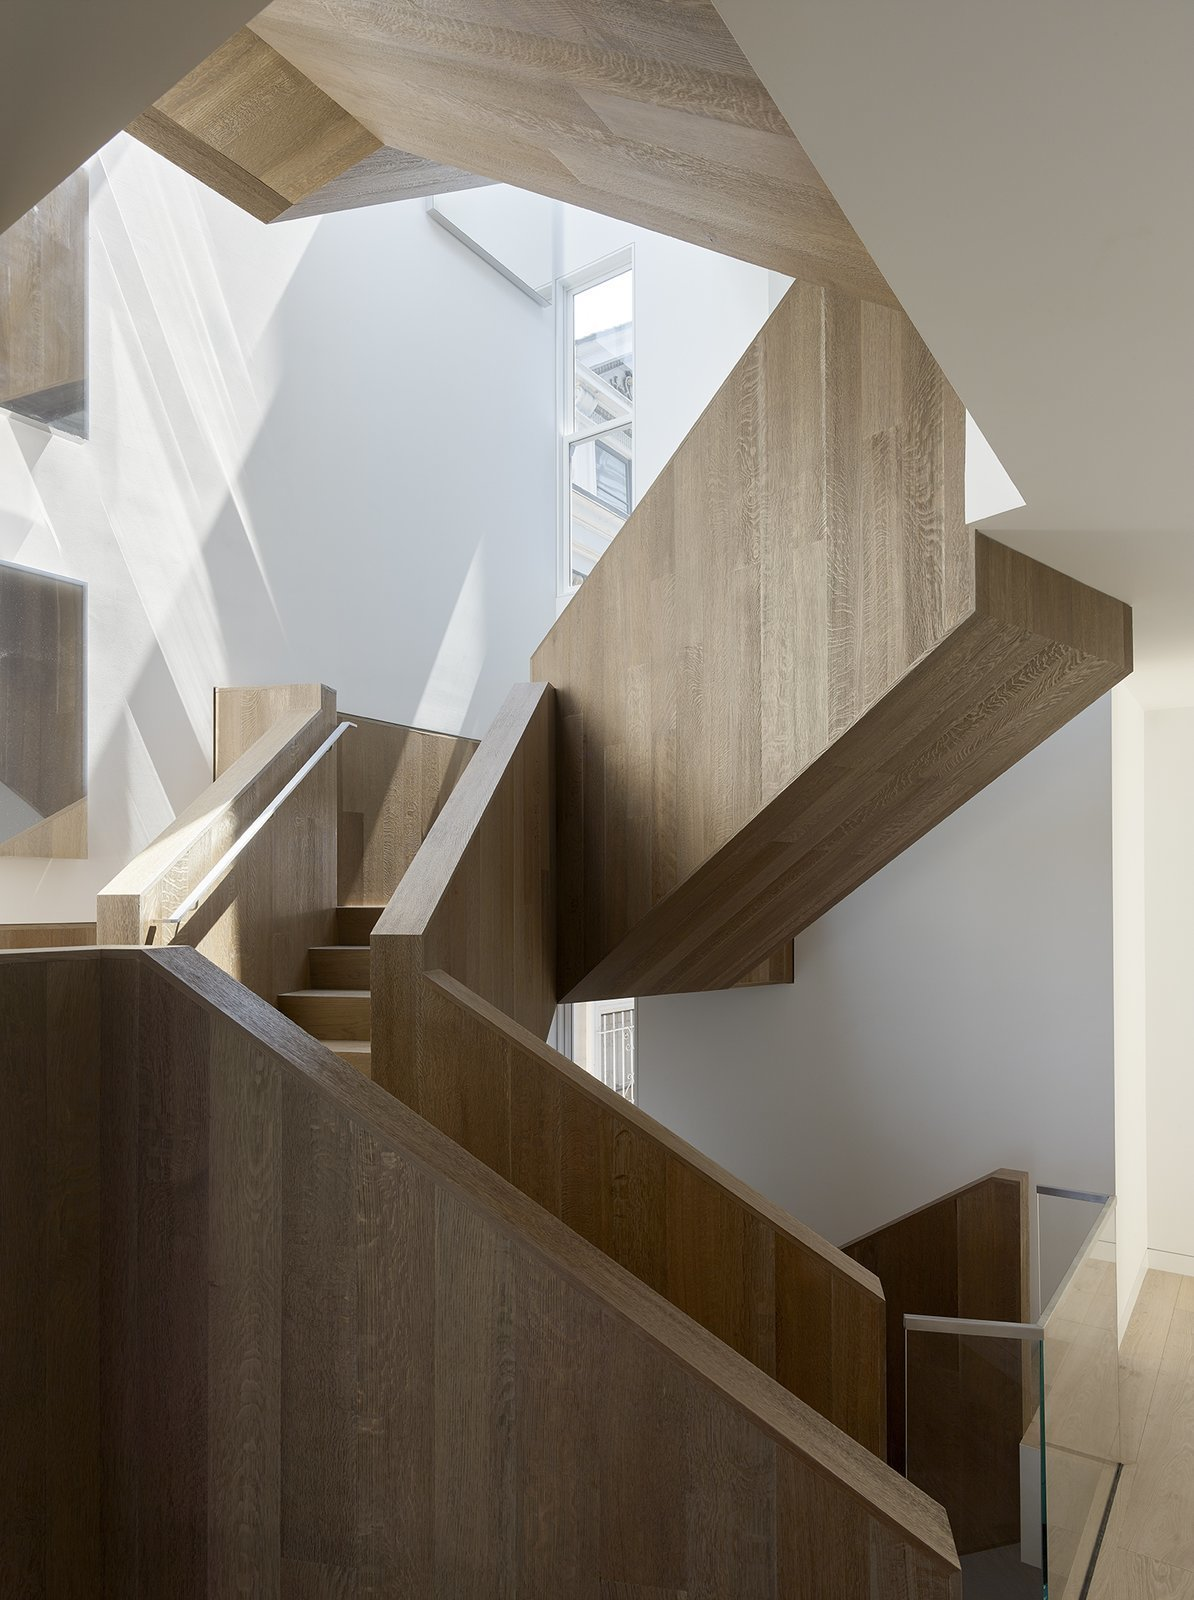 Staircase, Wood Tread, and Wood Railing The striking interior stair was originally designed as a light well to filter light from above deep into the interior space.  Best Photos